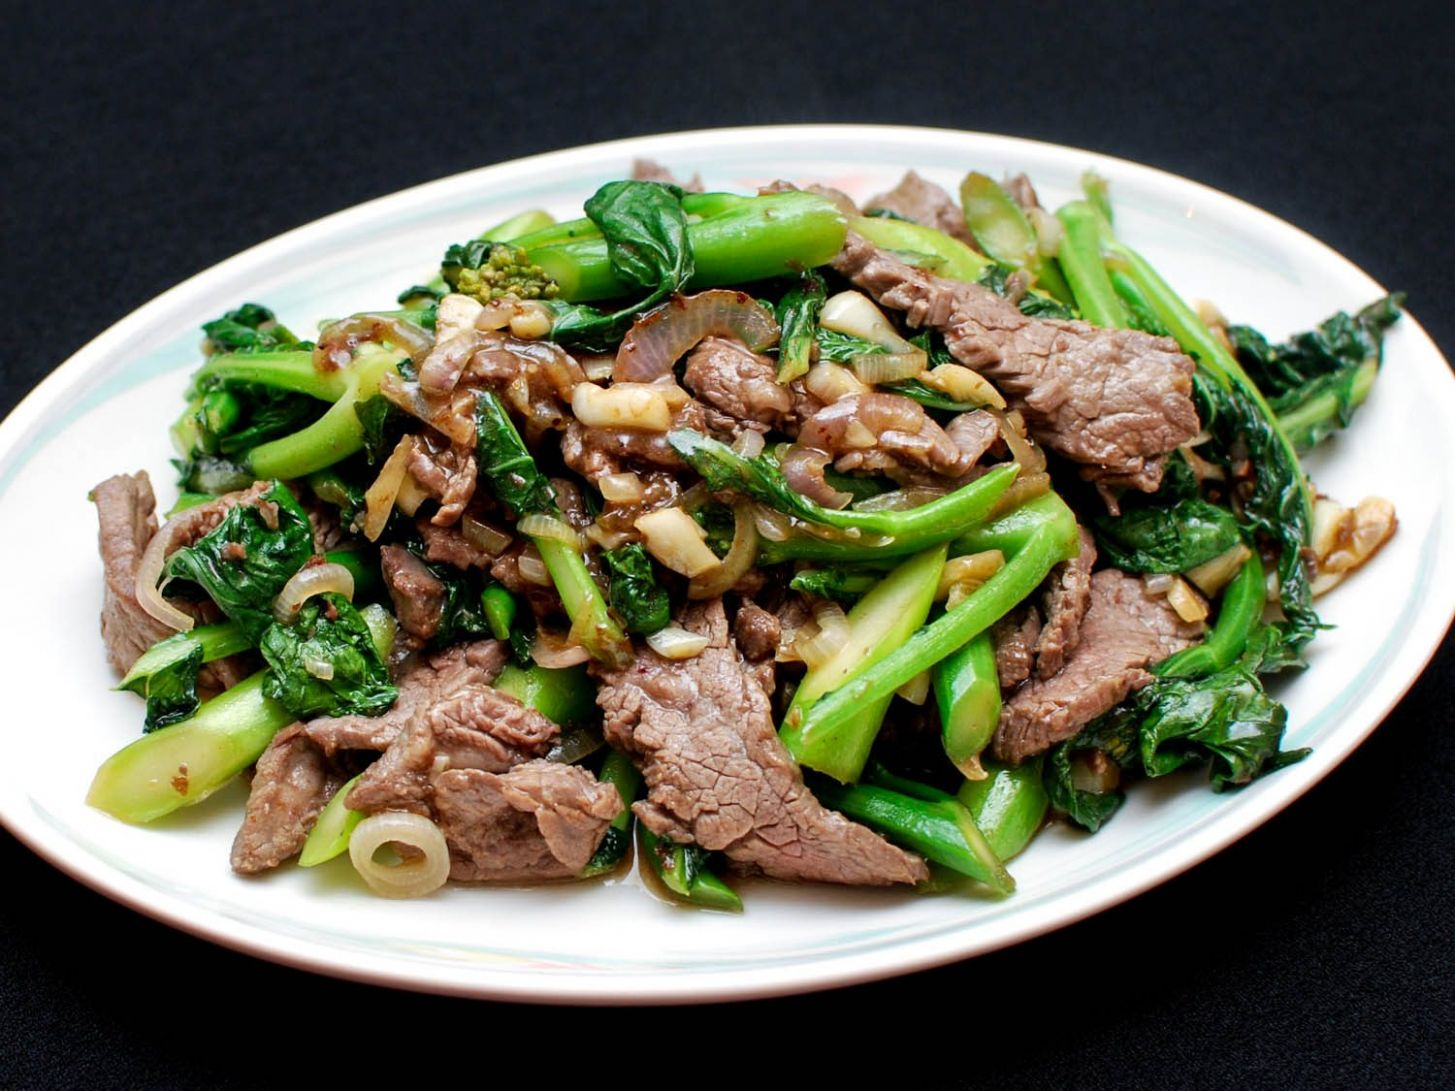 Stir-Fried Beef With Chinese Broccoli Recipe - Recipes Beef And Broccoli Chinese